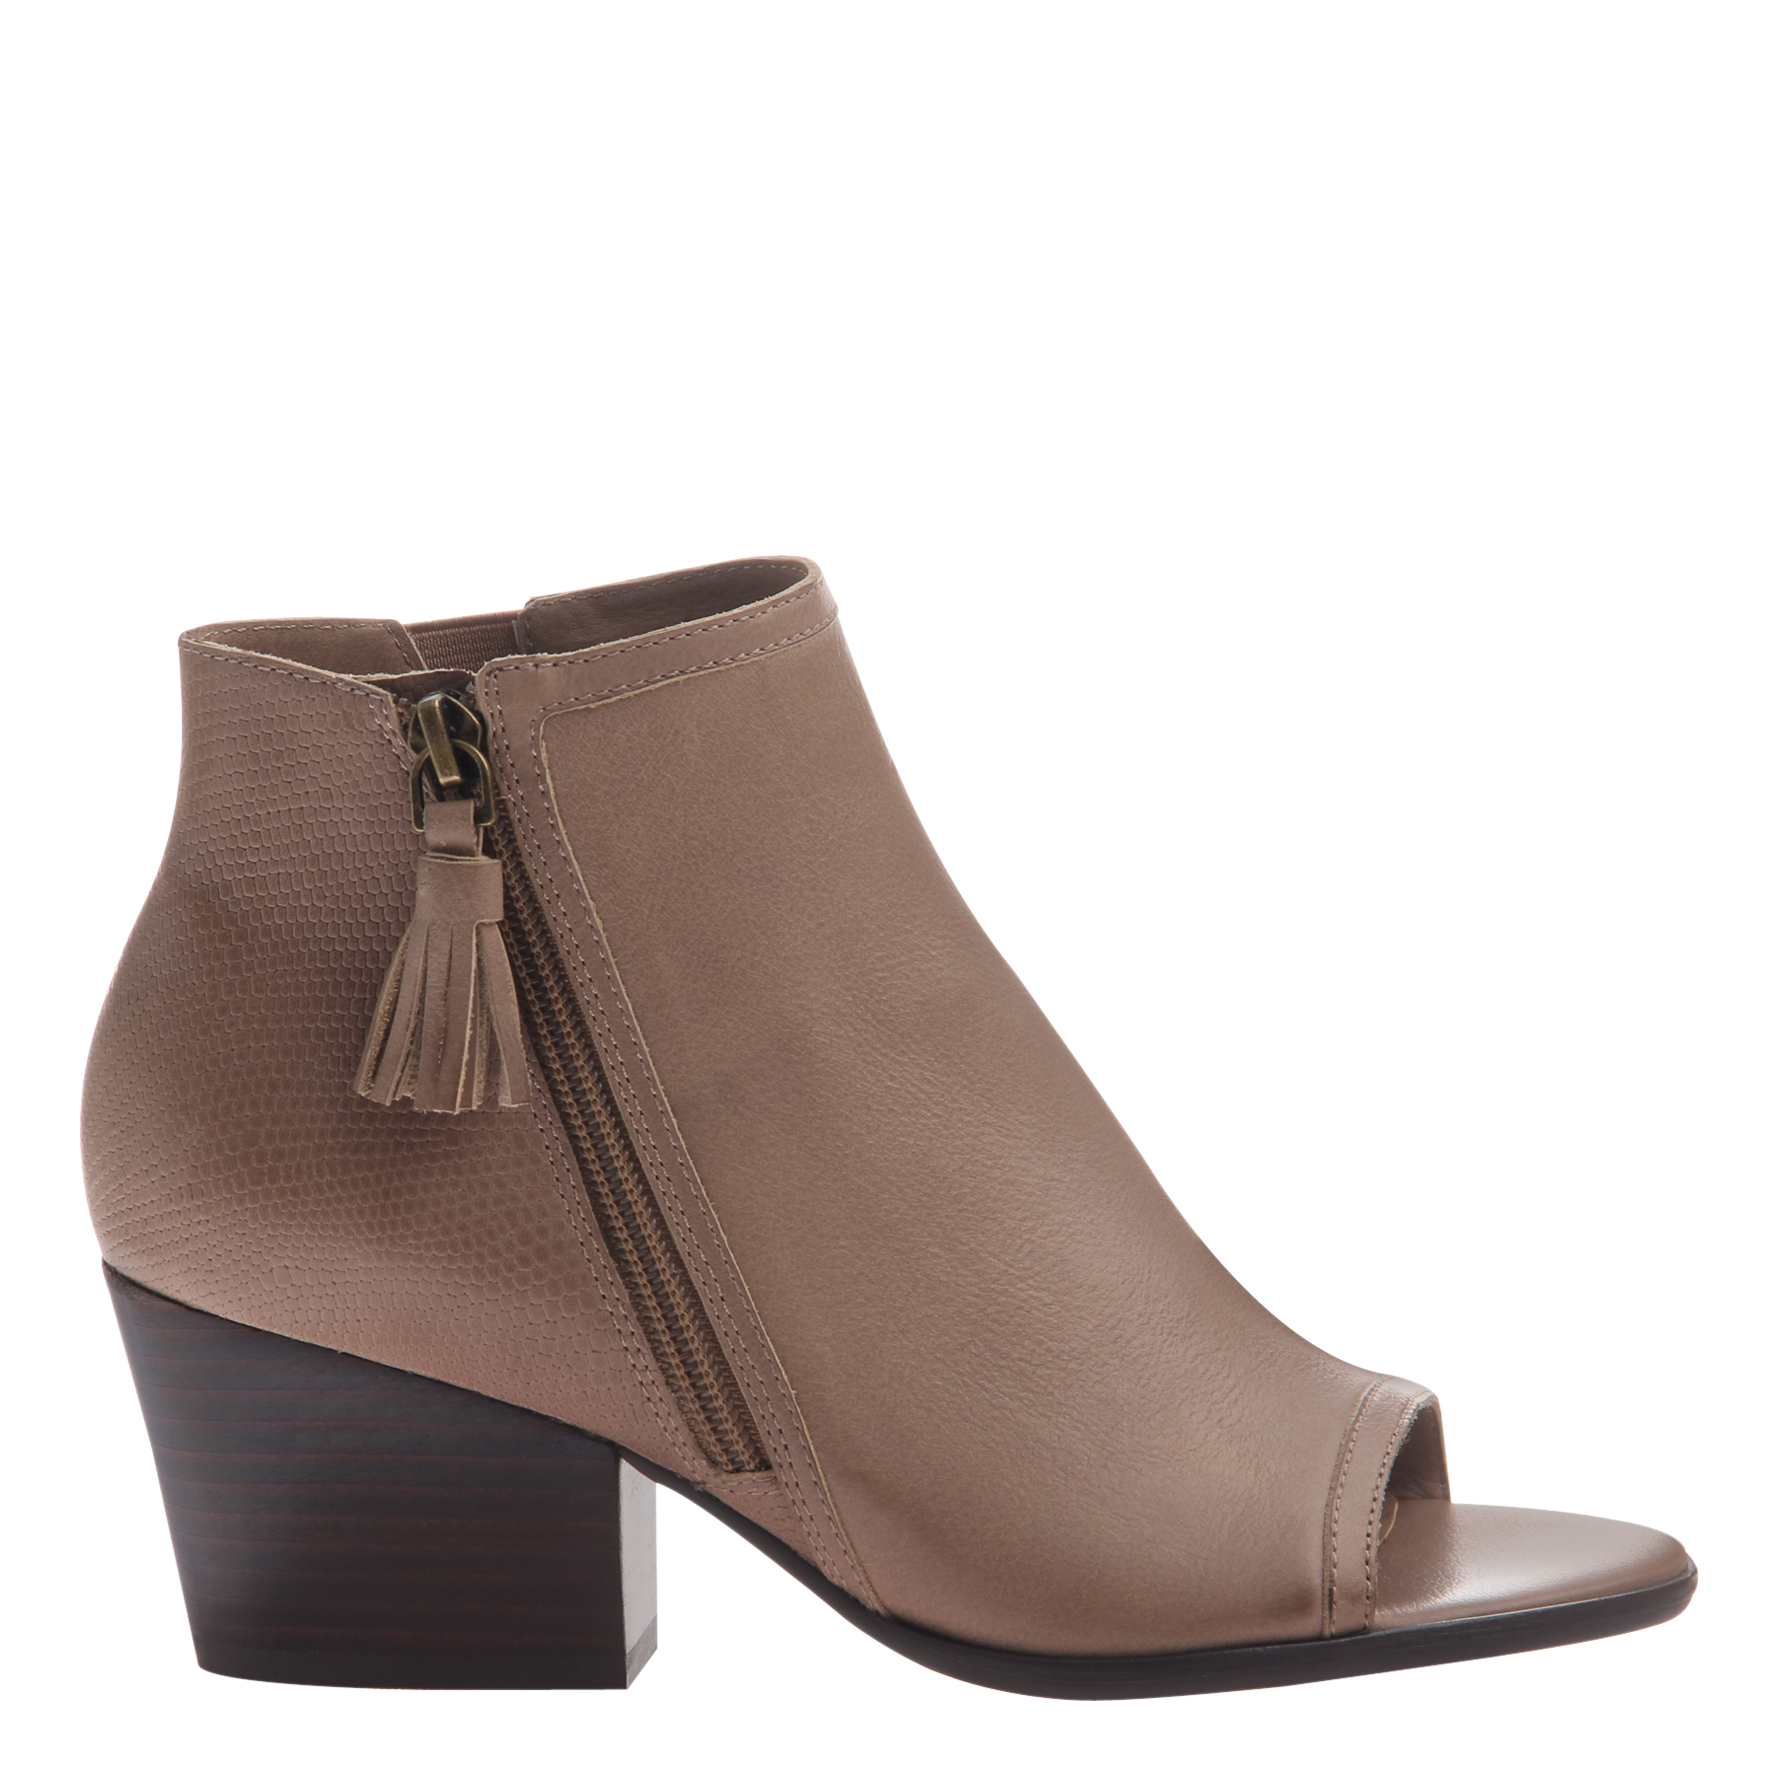 Nicole womens ankle boot Ania in pecan side view